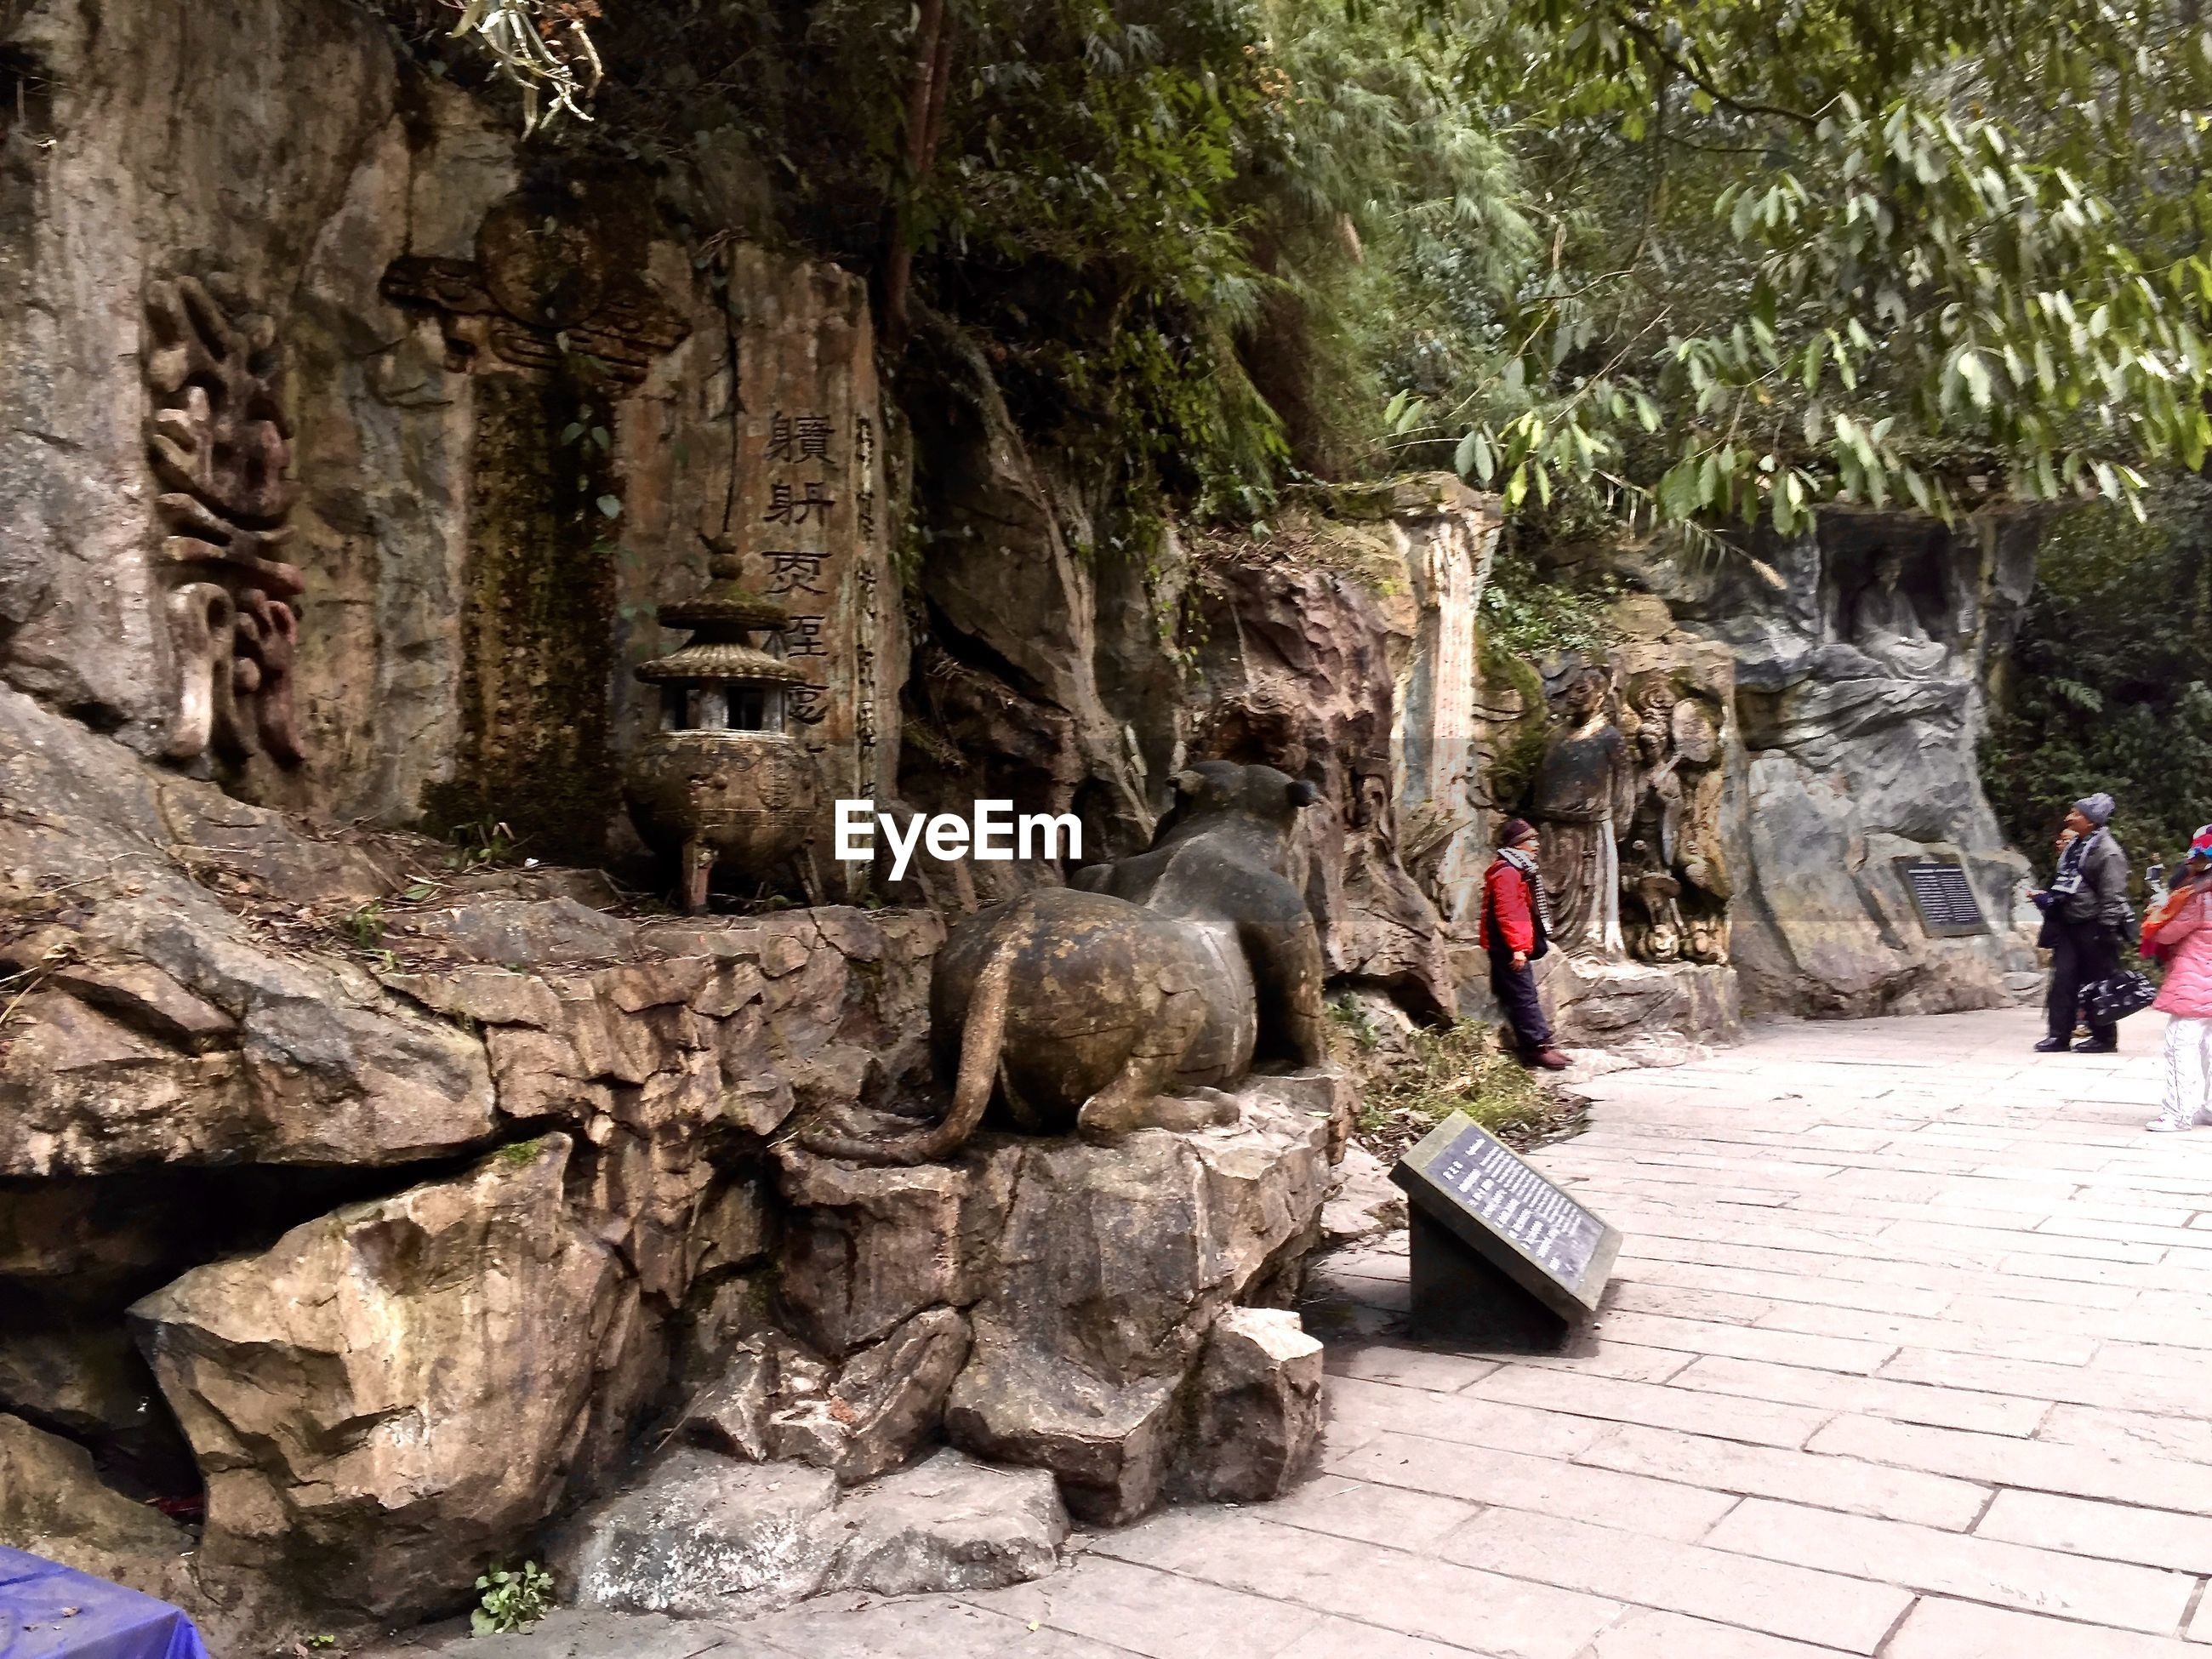 Tourists visiting carvings on rocks at historic site